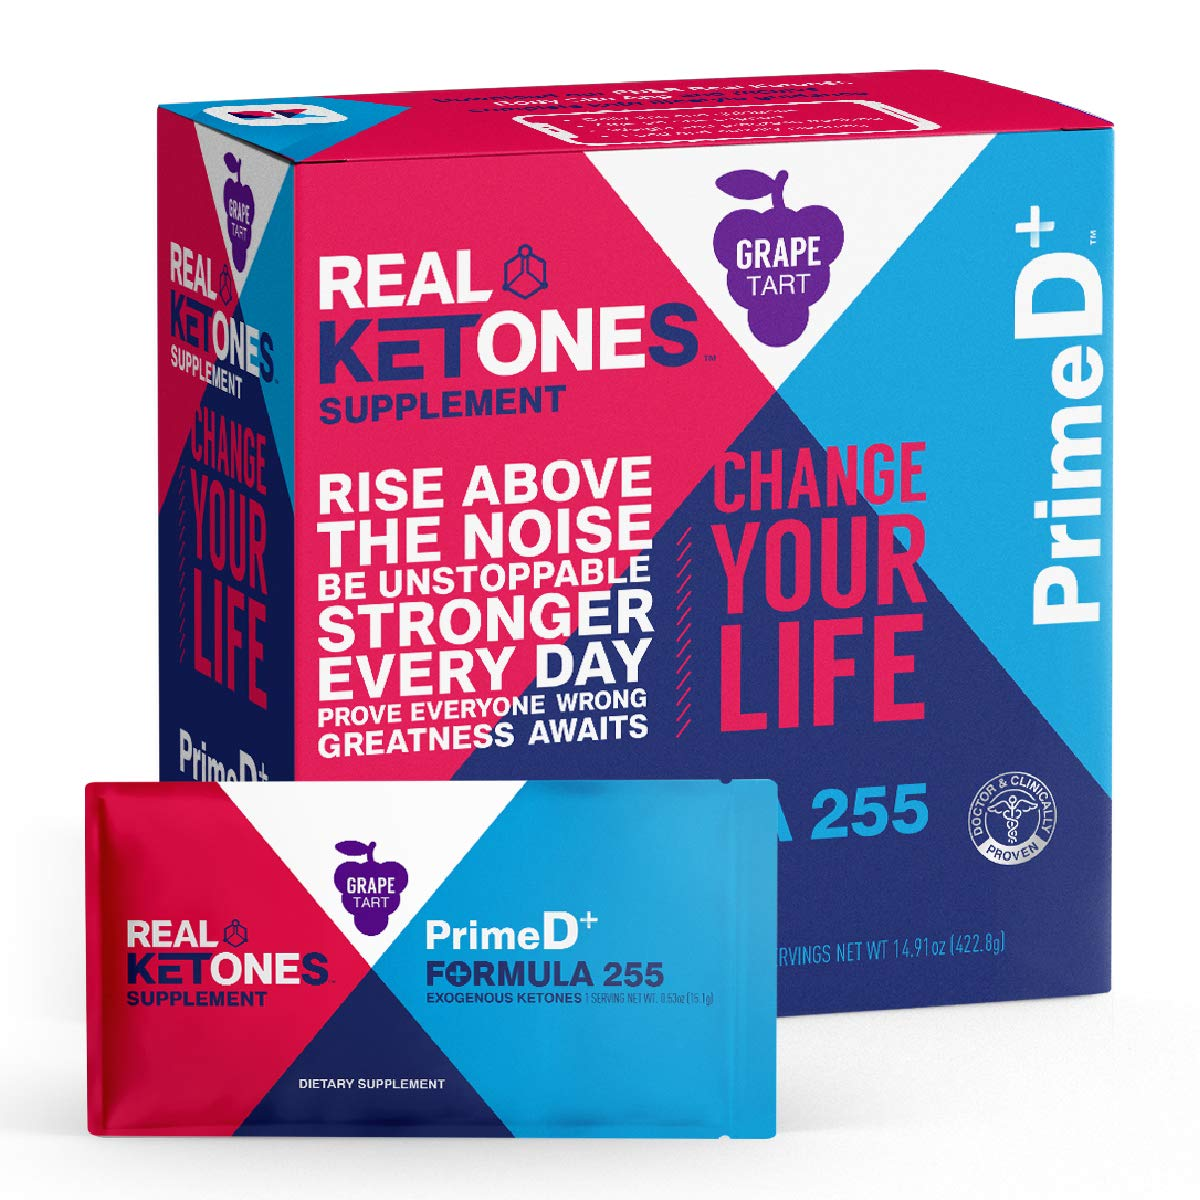 Real Ketones - Prime D+ Grape Tart Exogenous Ketone Supplement with BHB and MCT Combo for Ketone Boost, Energy and Focus by Real Ketones